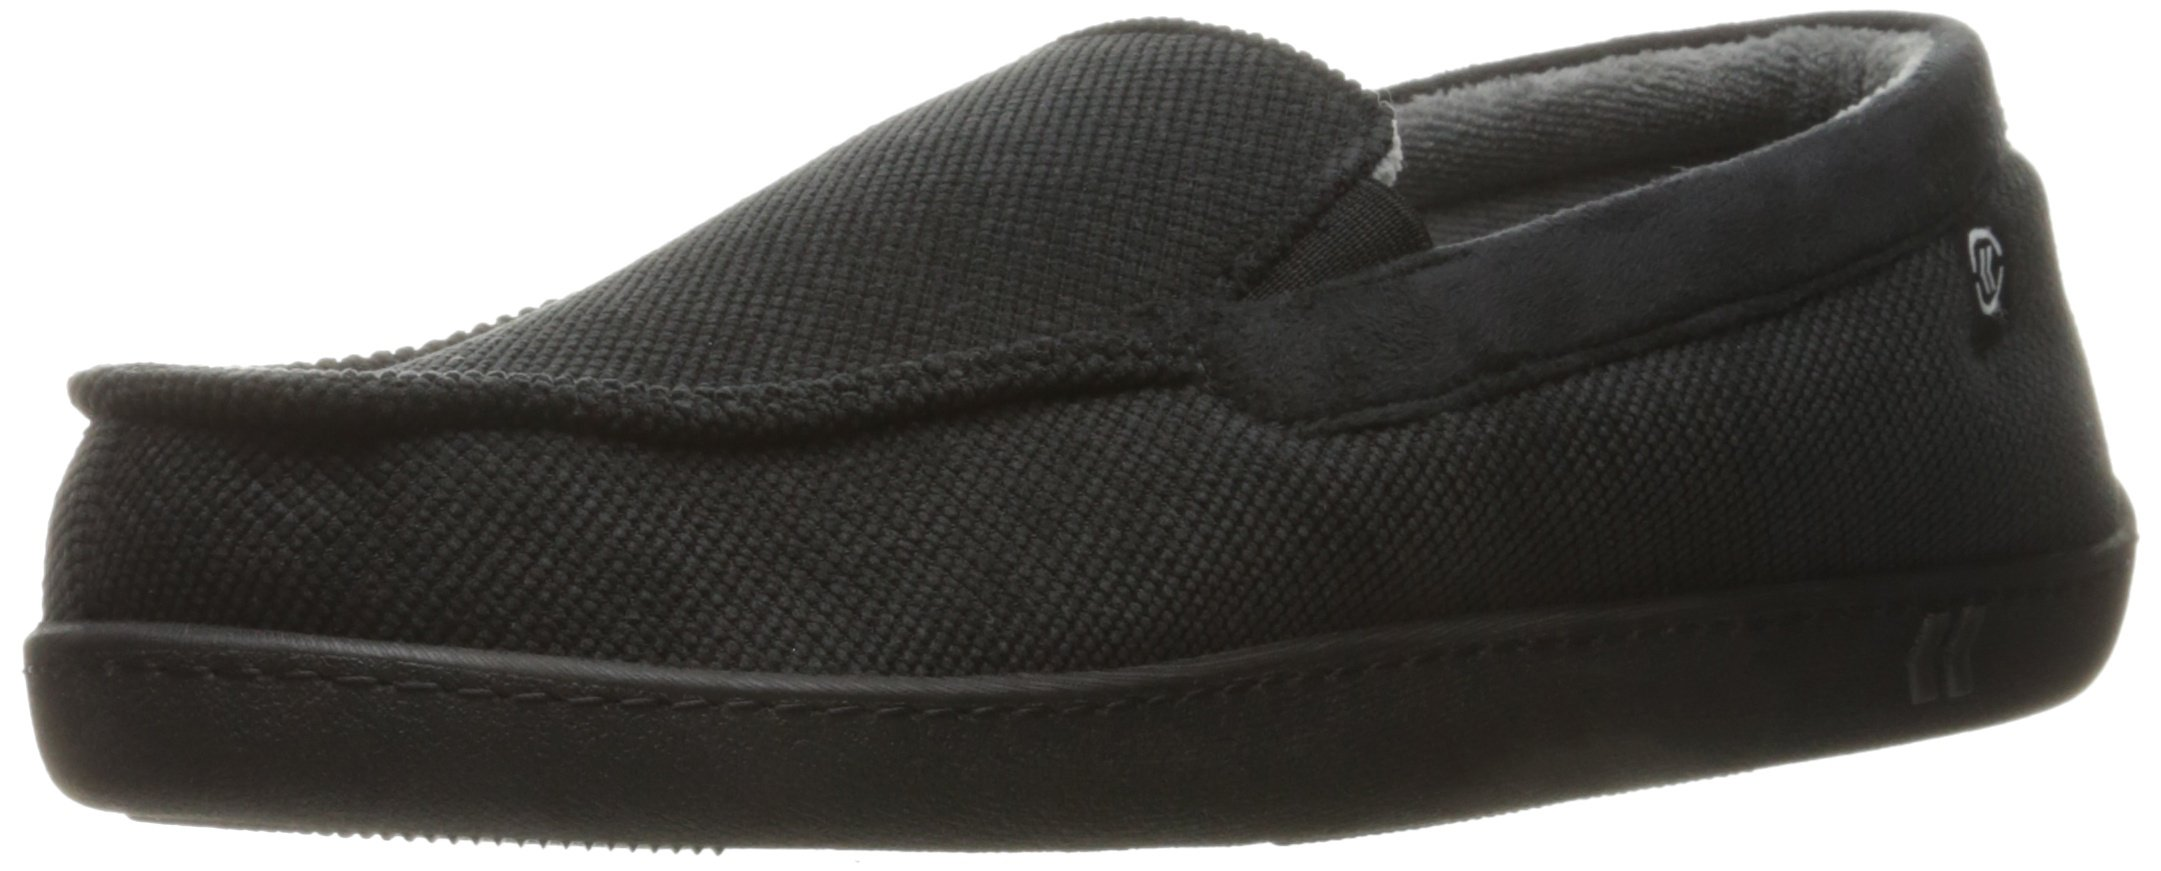 ISOTONER Men's Corduroy Gel Infused Memory Foam Moccasin, Black, Large/9.5-10.5 M US